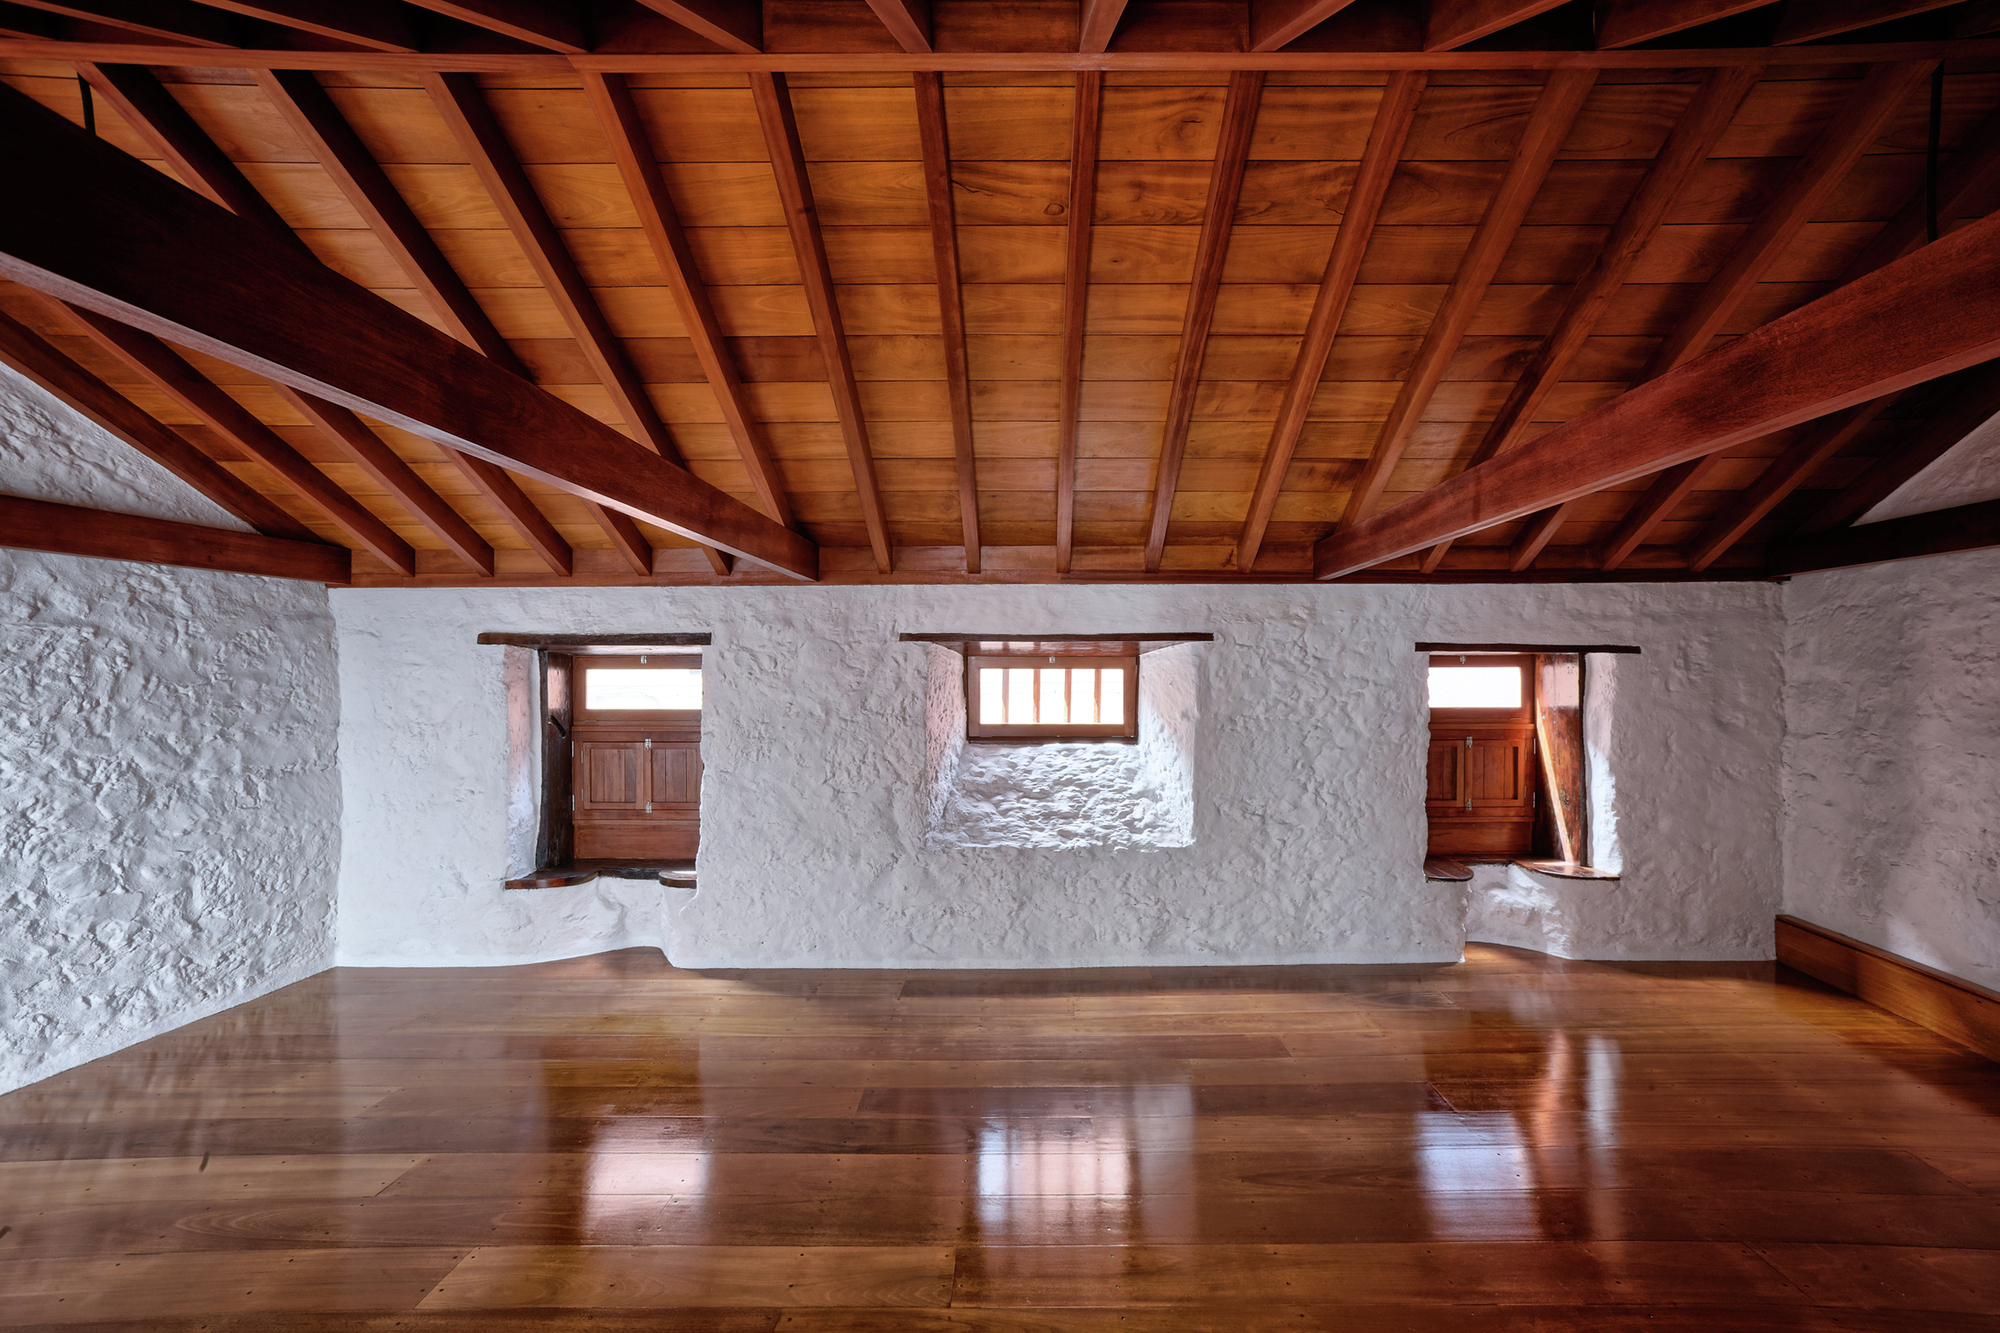 Gallery of housing in canary islands alejandro beautell 11 - Alejandro beautell ...